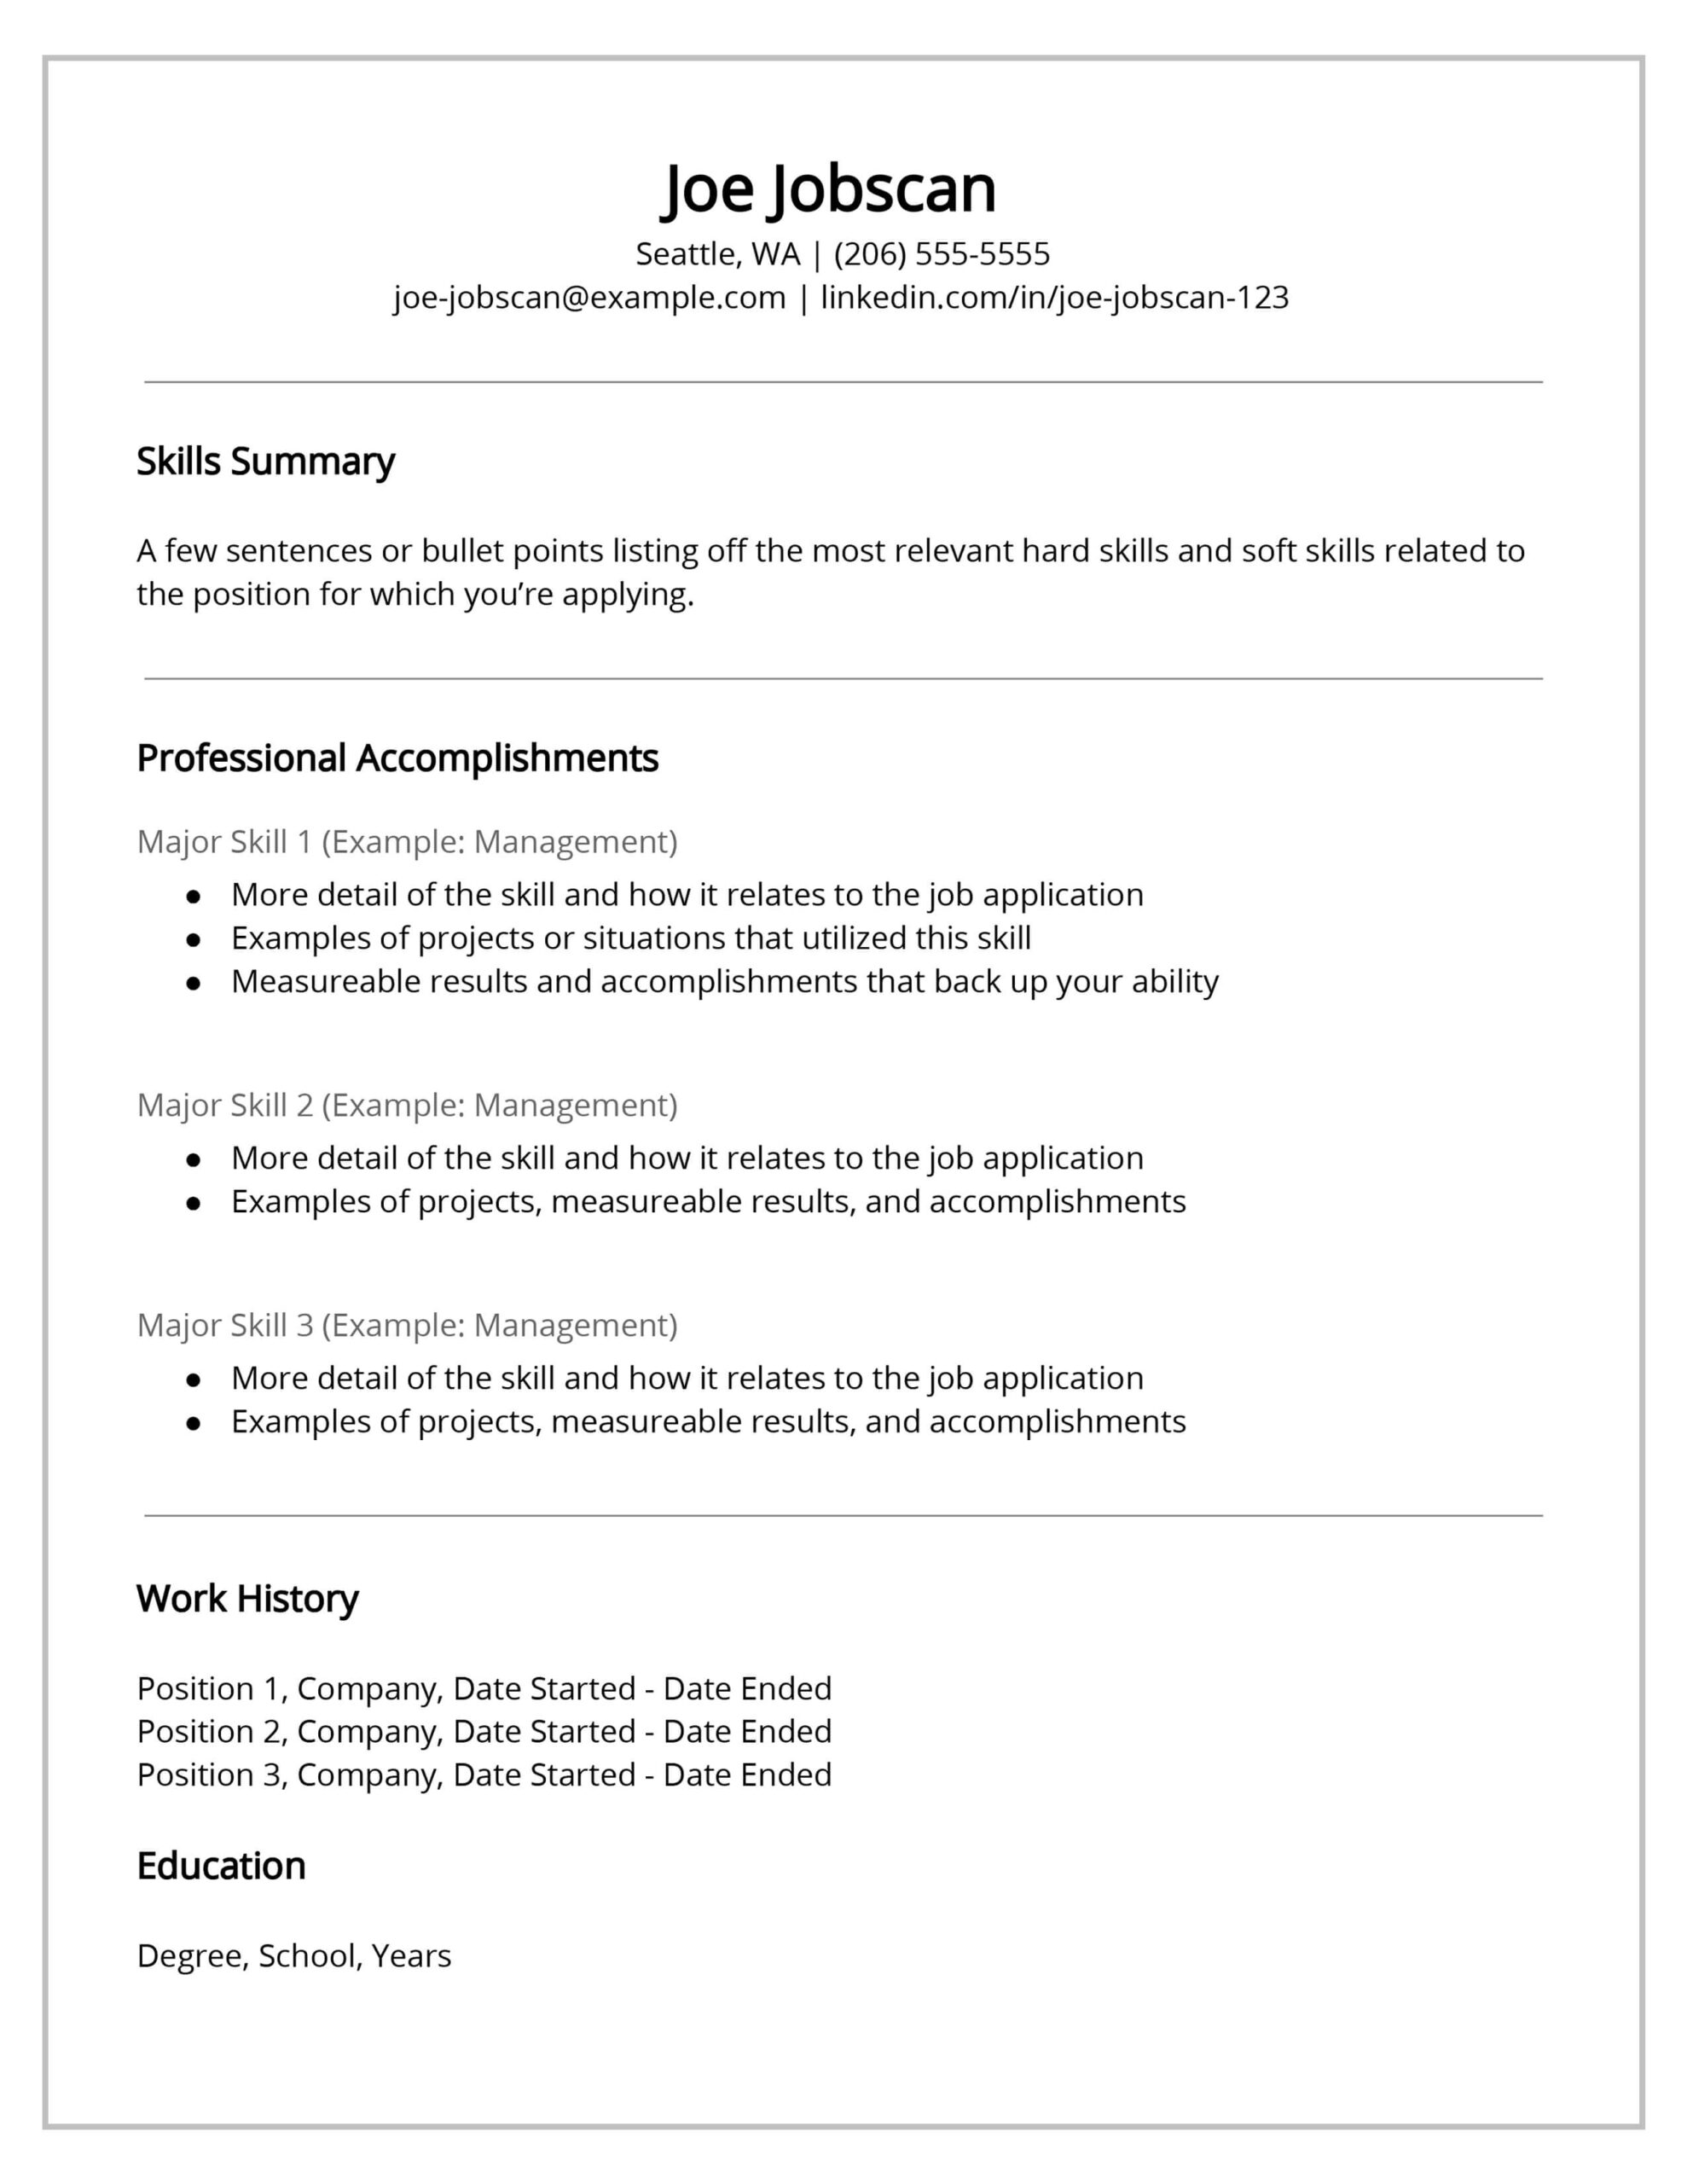 recruiters hate the functional resume format here free for job application template Resume Free Resume For Job Application